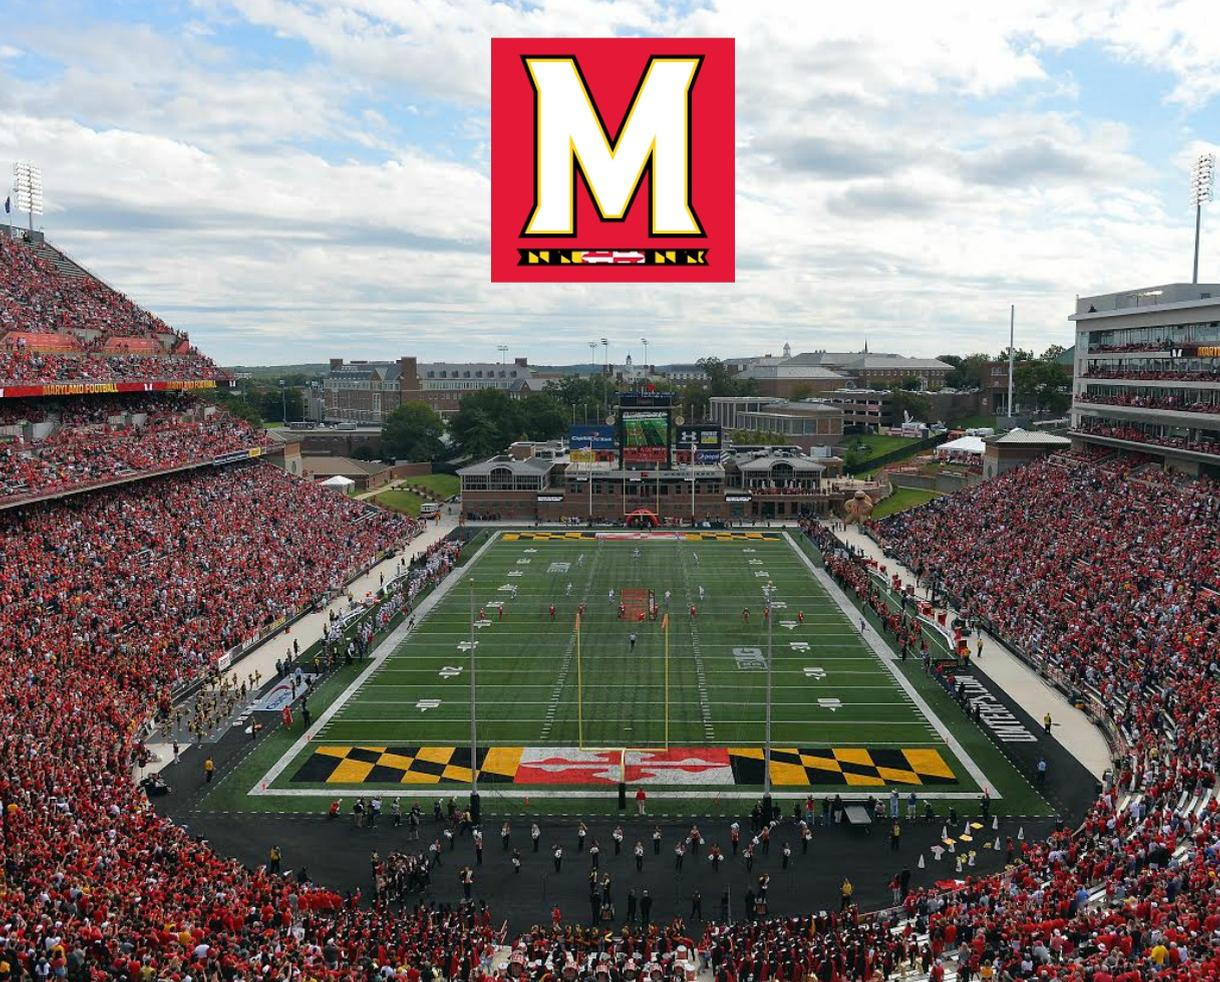 University of Maryland Football Game at Capital One Field